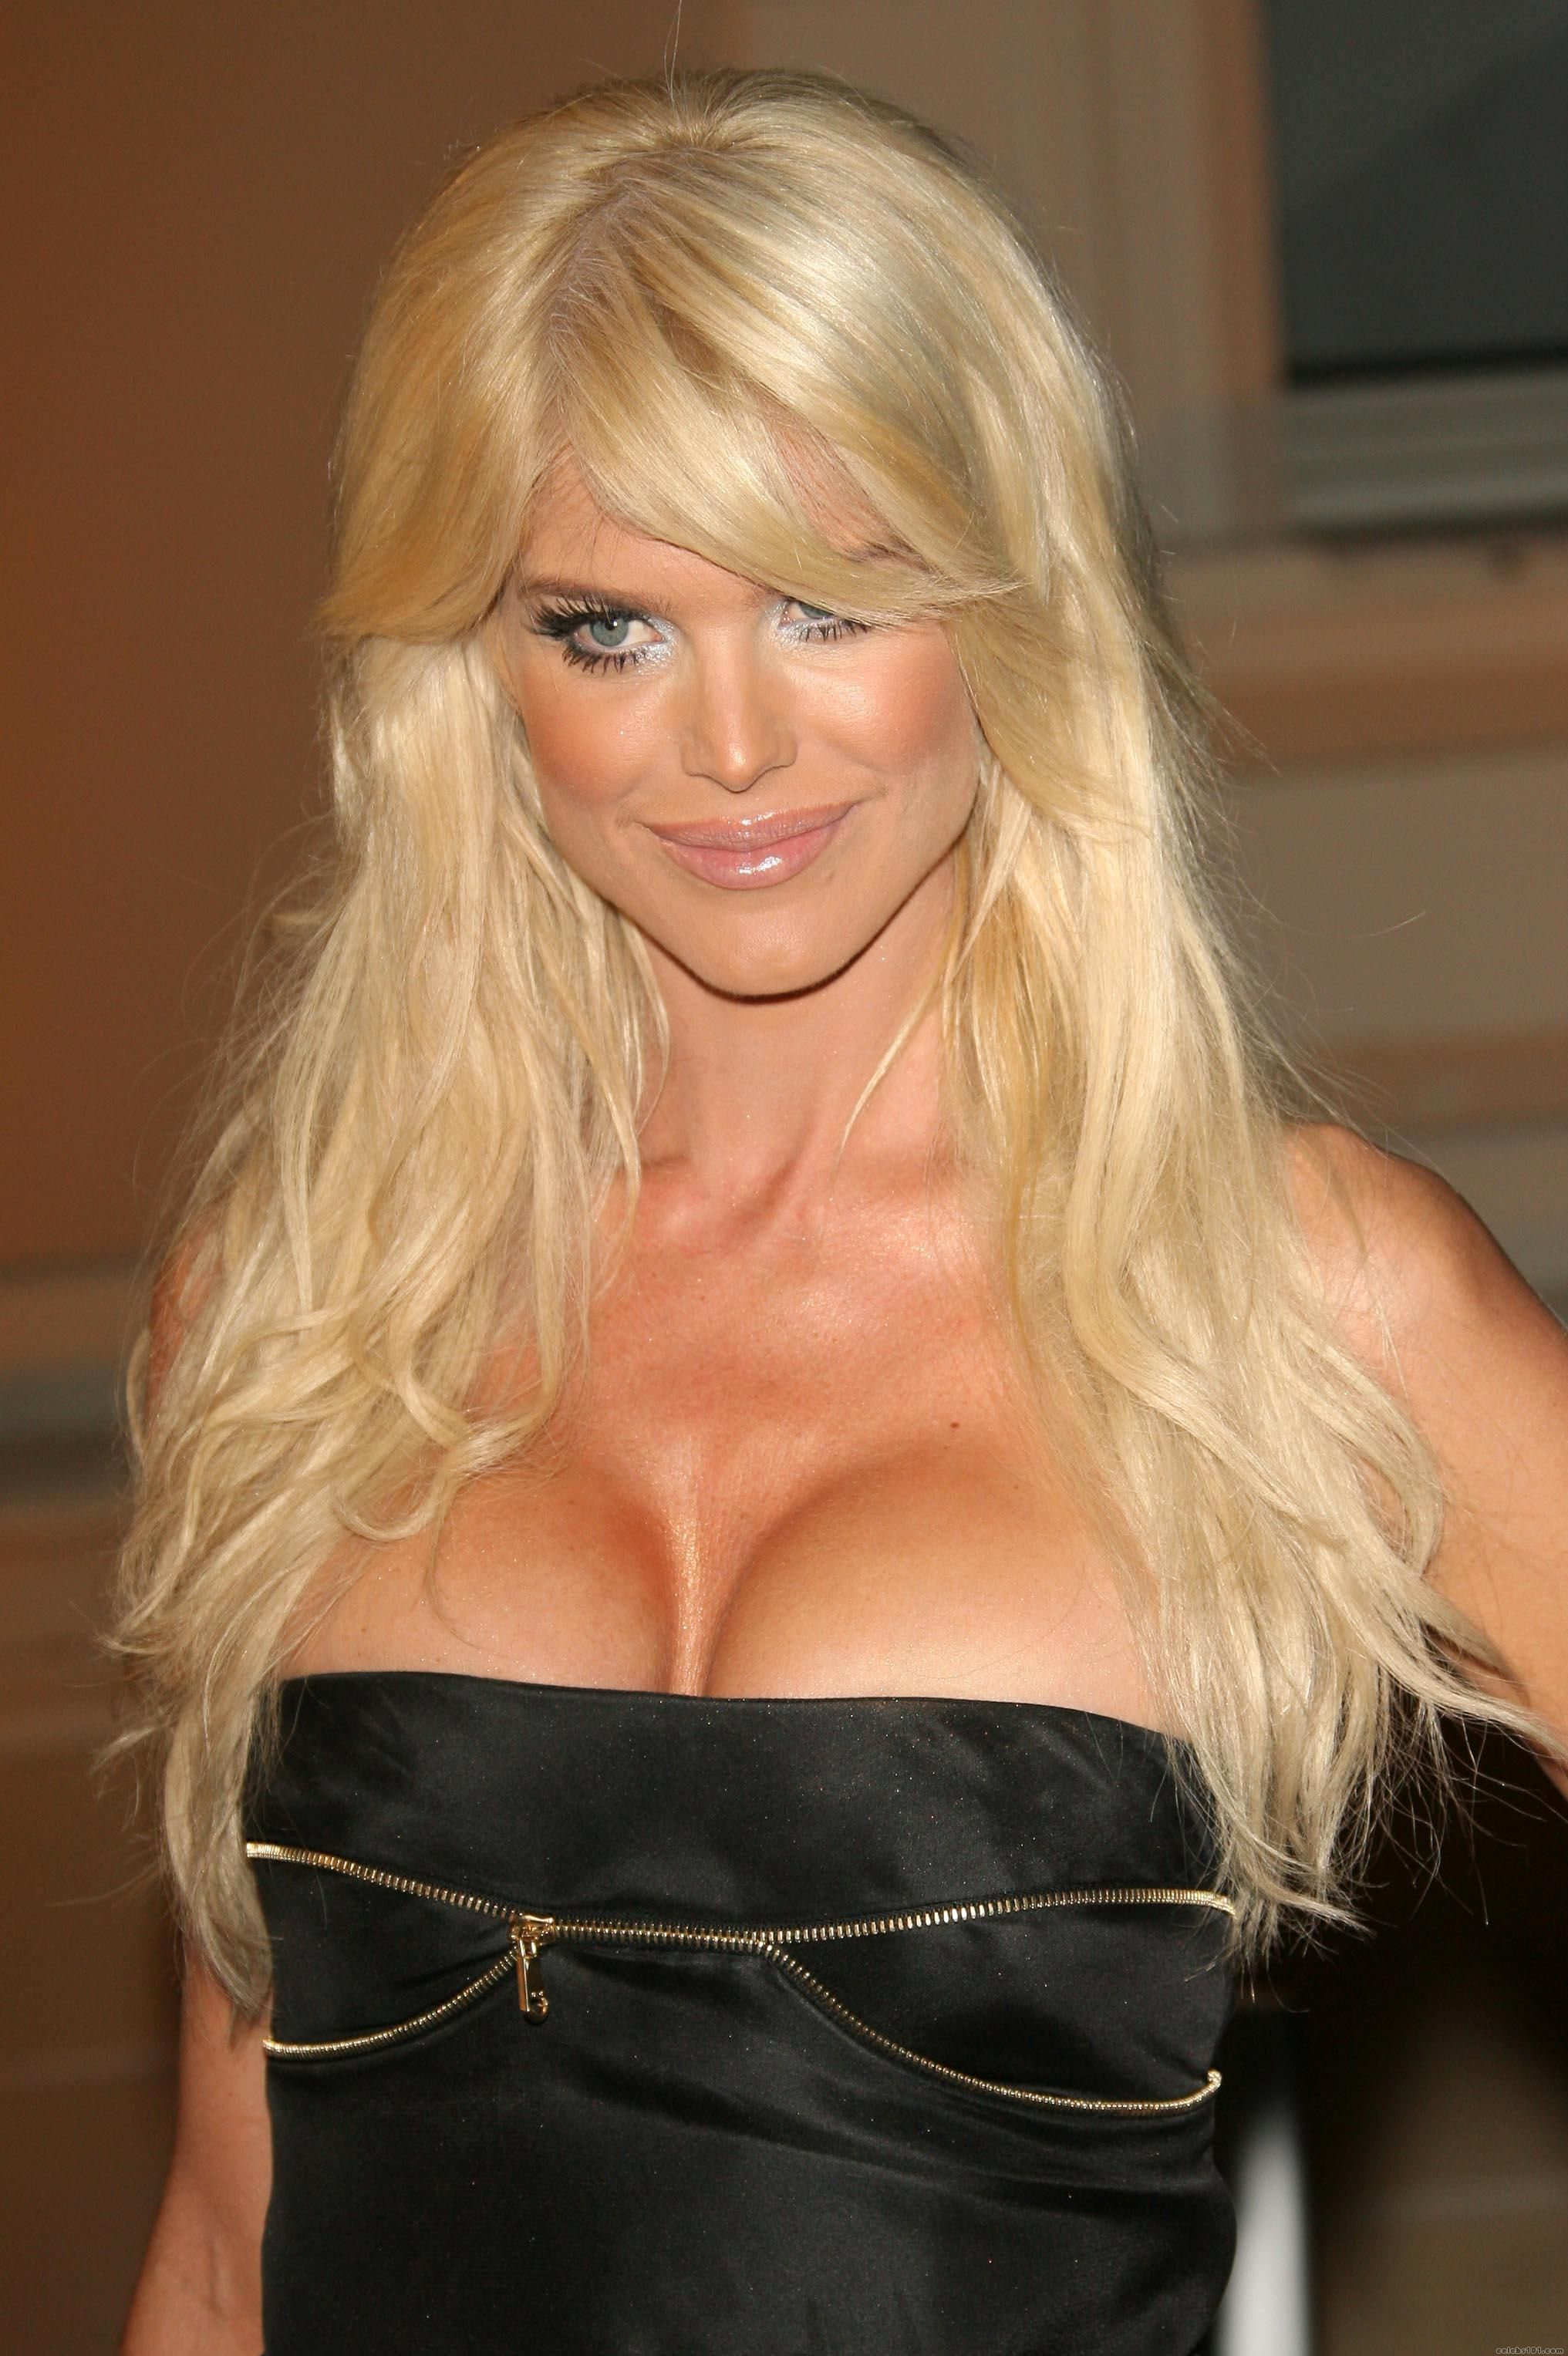 Cleavage Victoria Silvstedt nudes (64 photo), Tits, Is a cute, Twitter, legs 2015